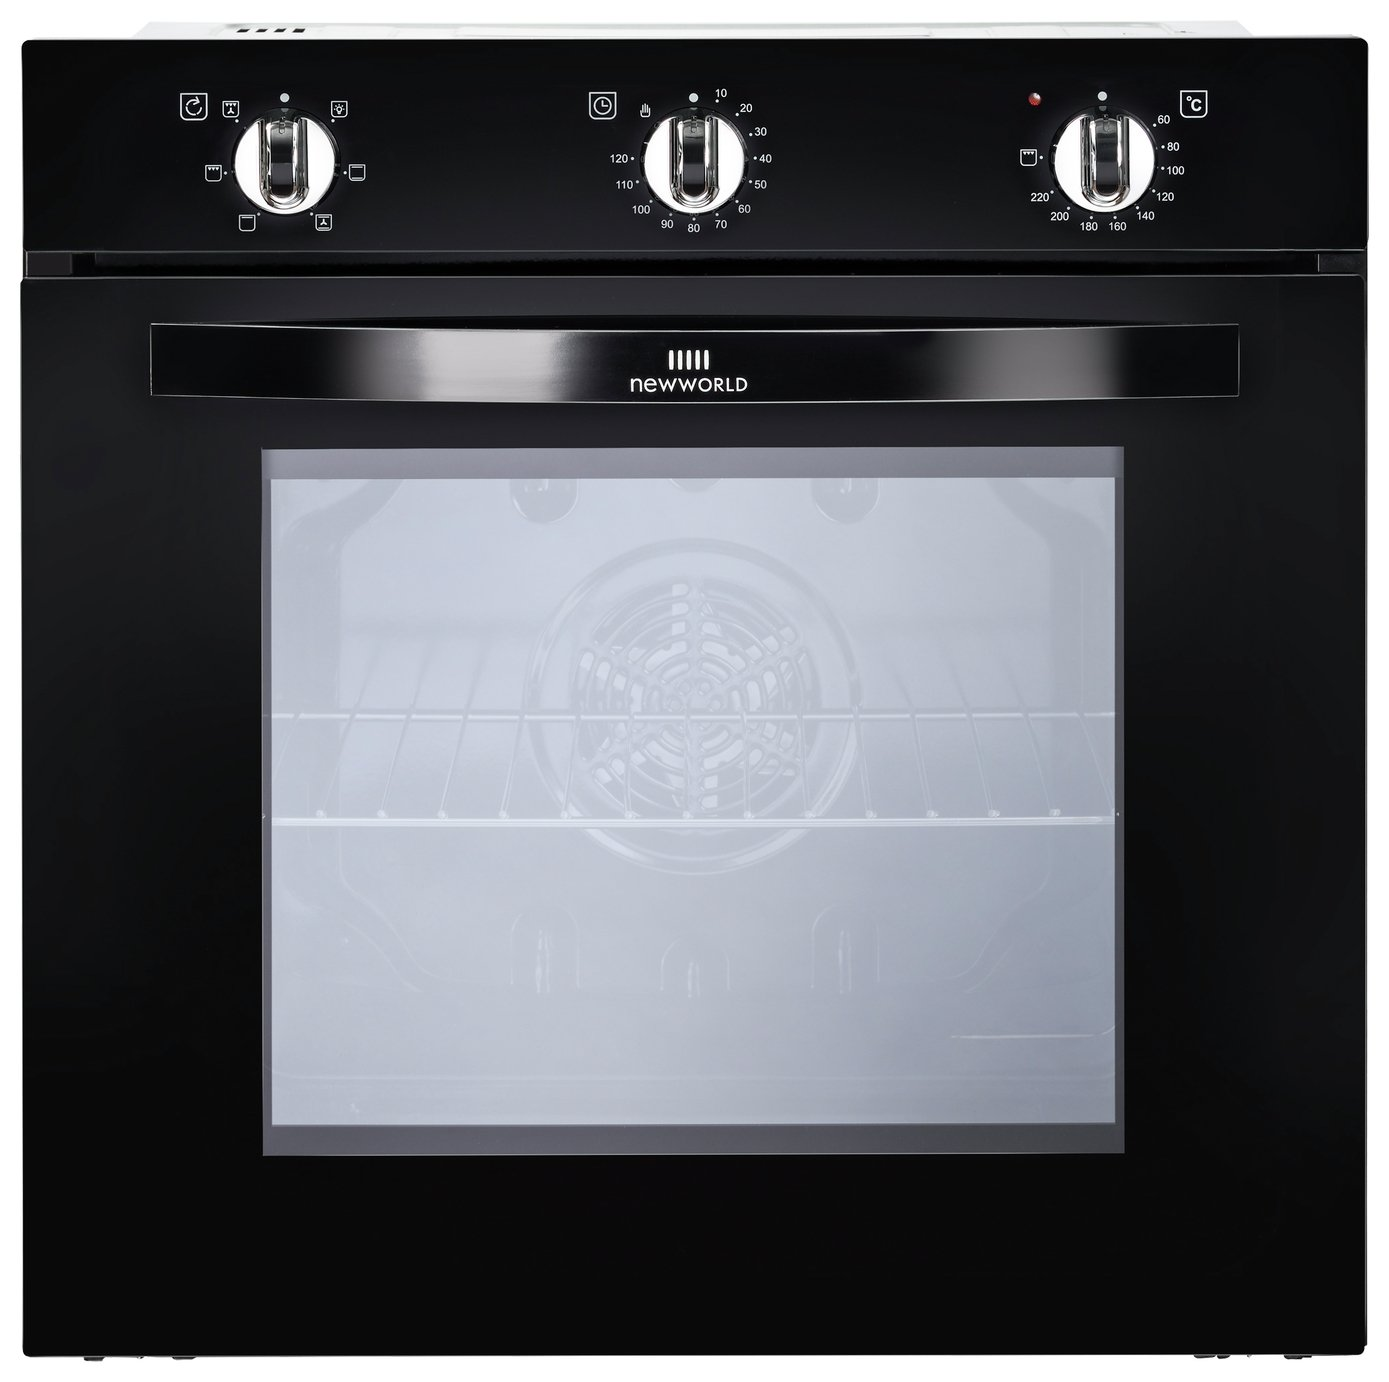 New World NW602F Built-in Single Oven - Black.